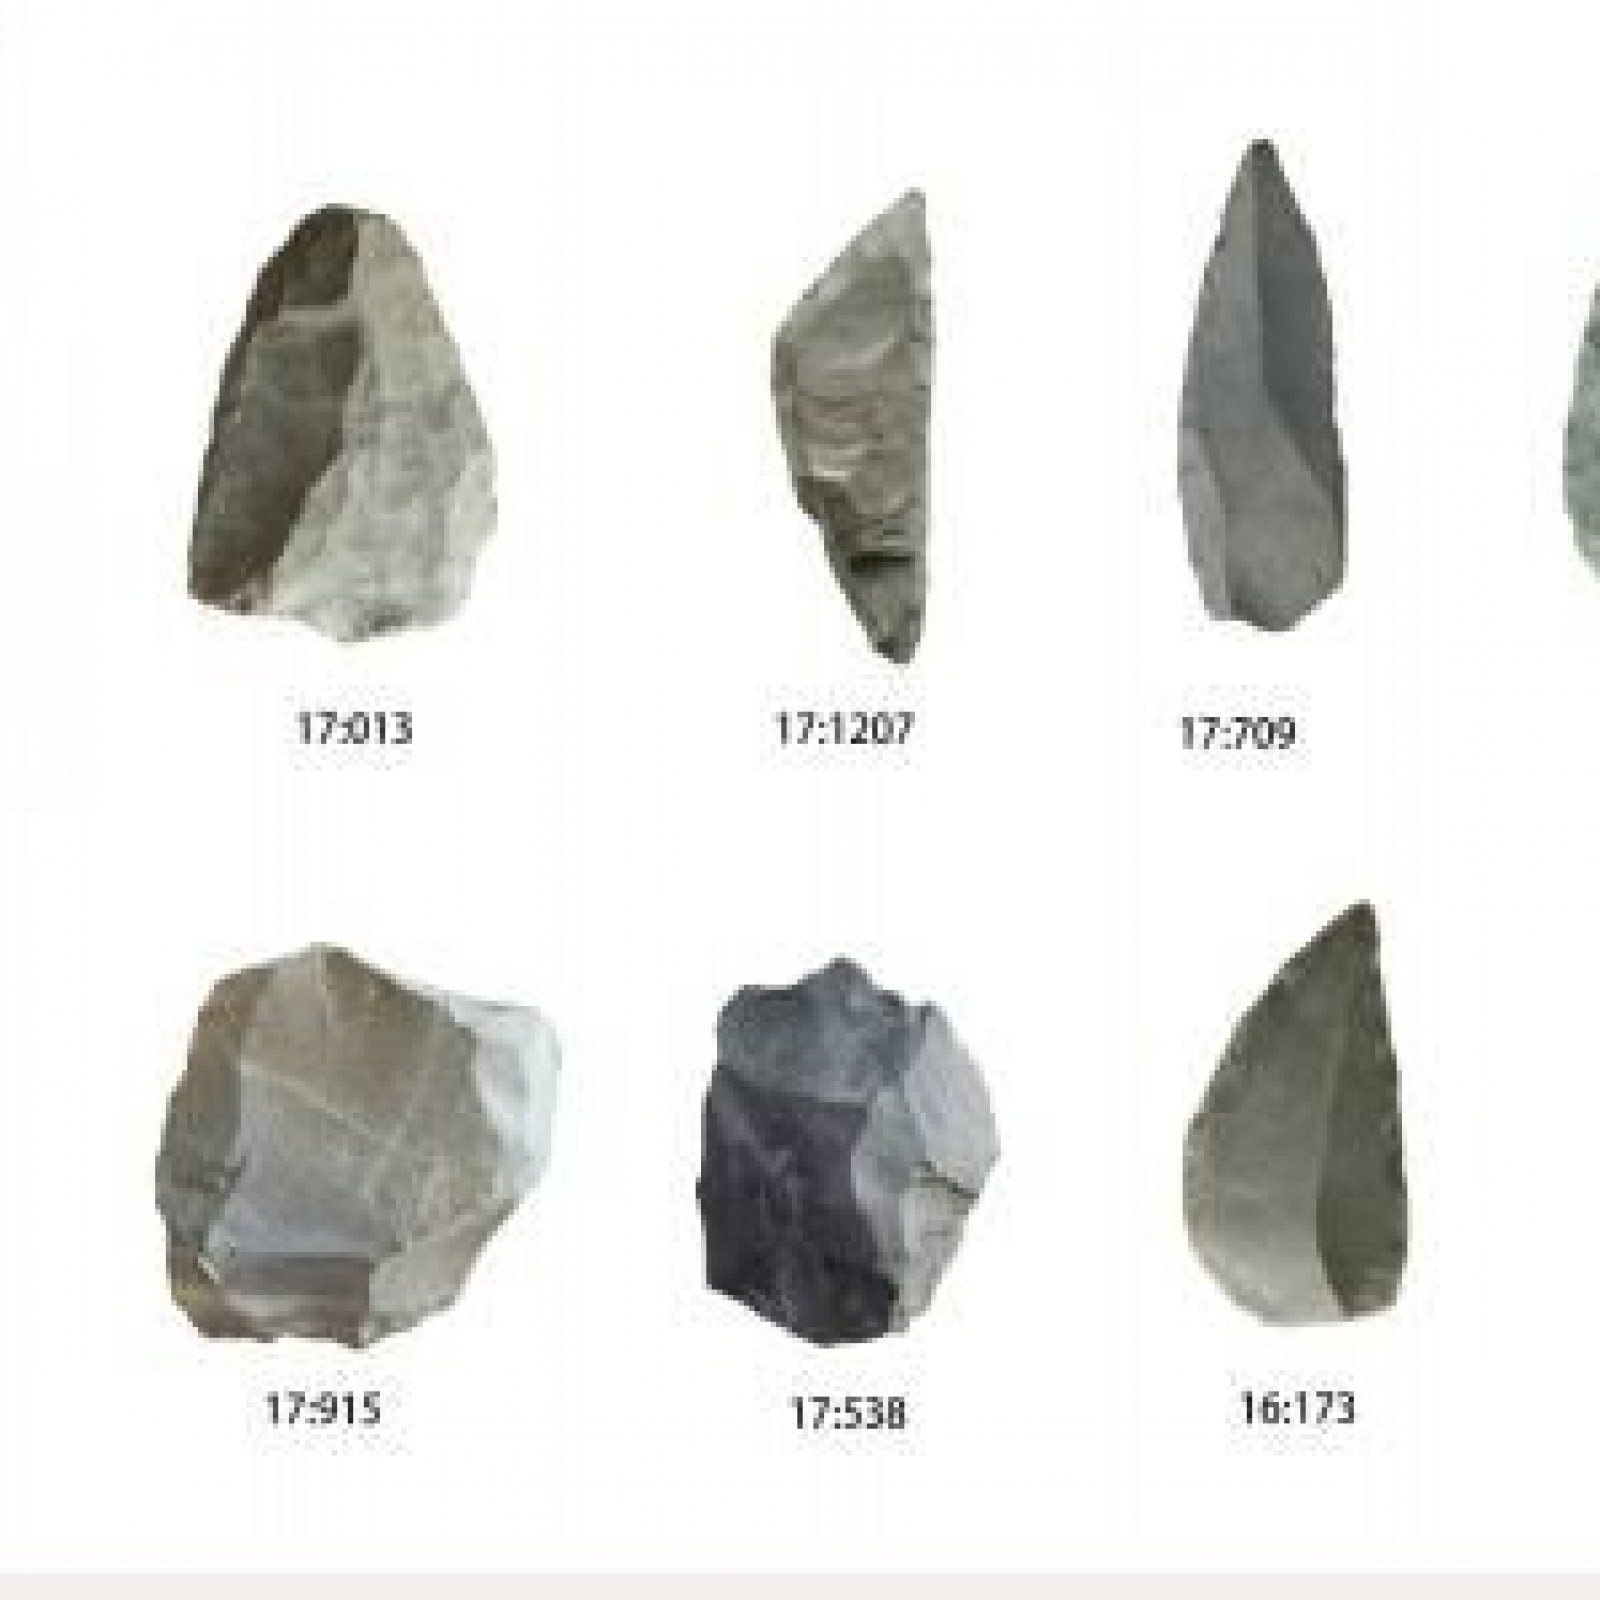 carbon dating stone tools